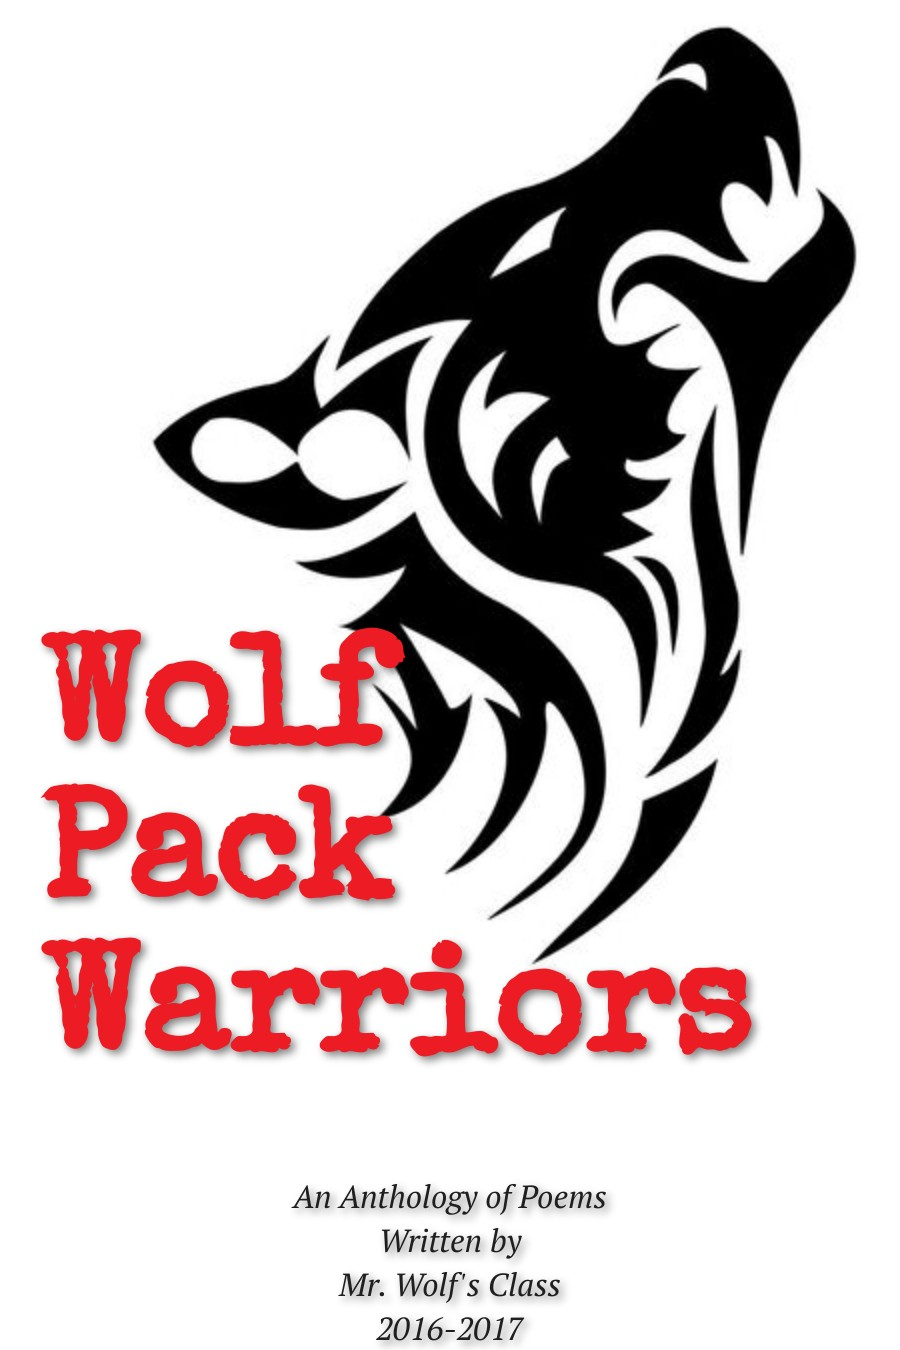 Wolf Pack Warriors - An Anthology of Poems